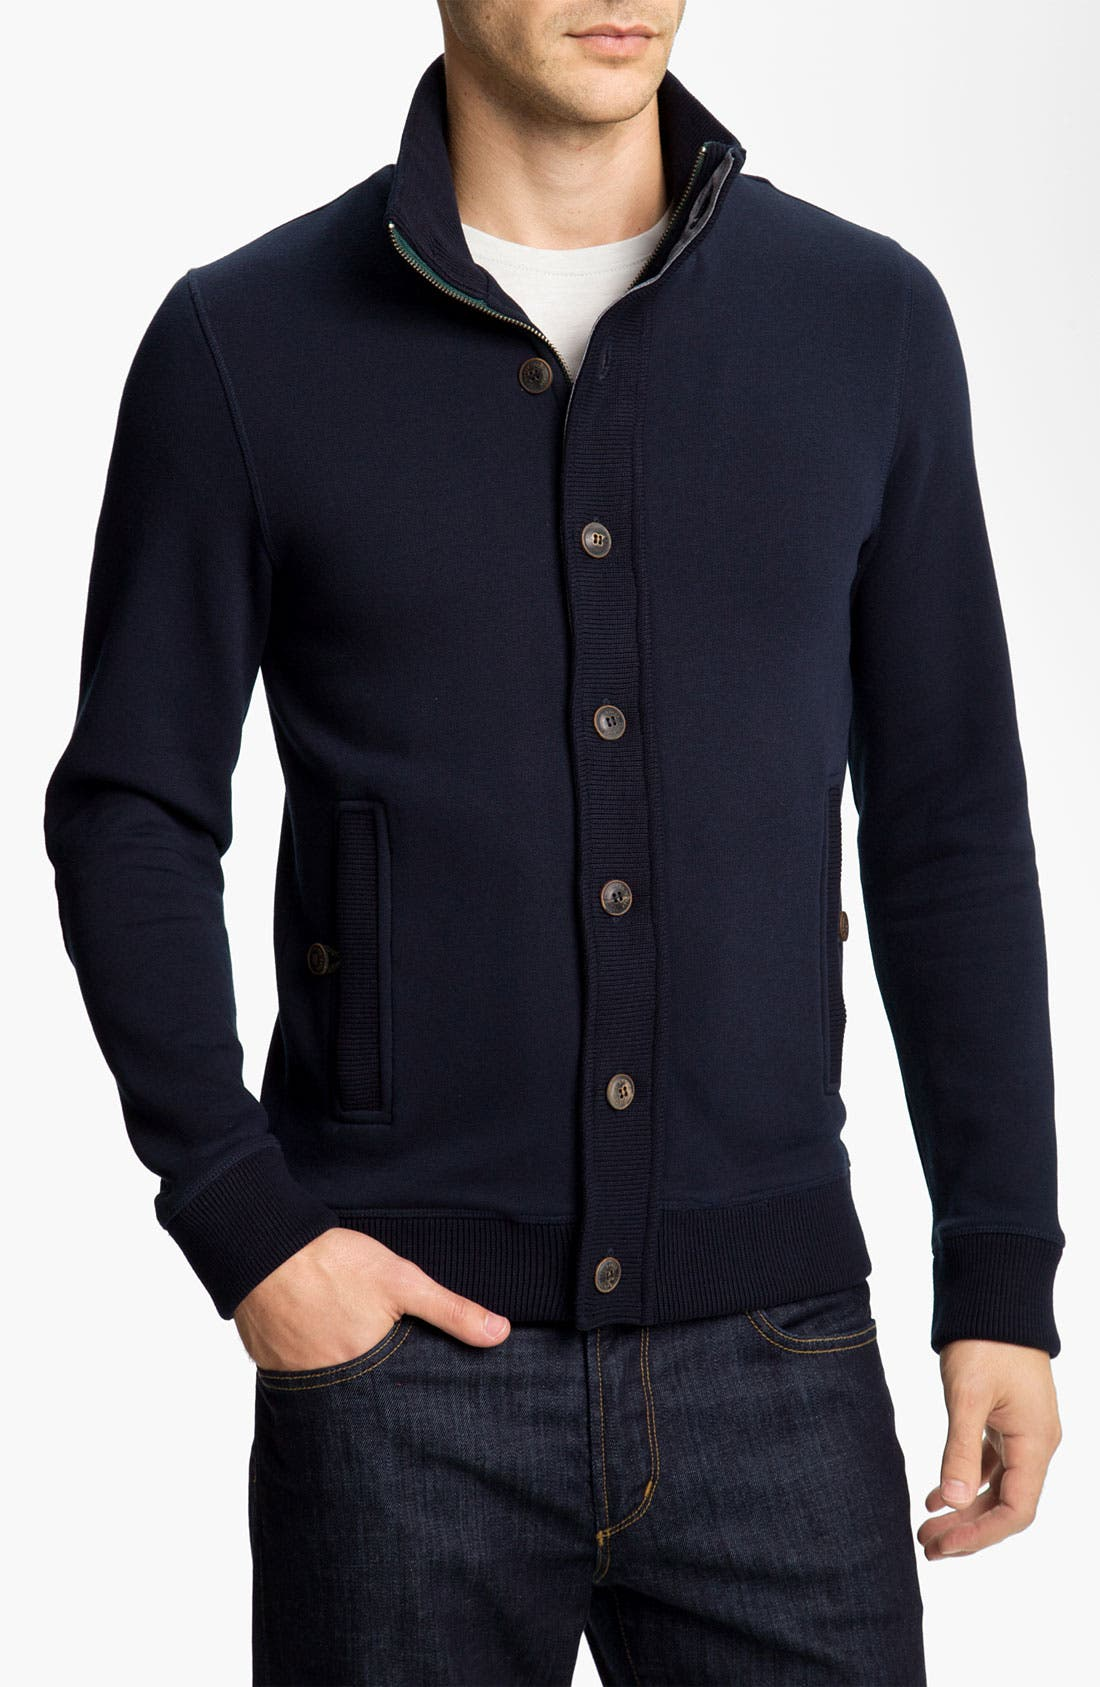 Alternate Image 1 Selected - Ted Baker London 'Nordman' Sweatshirt Cardigan